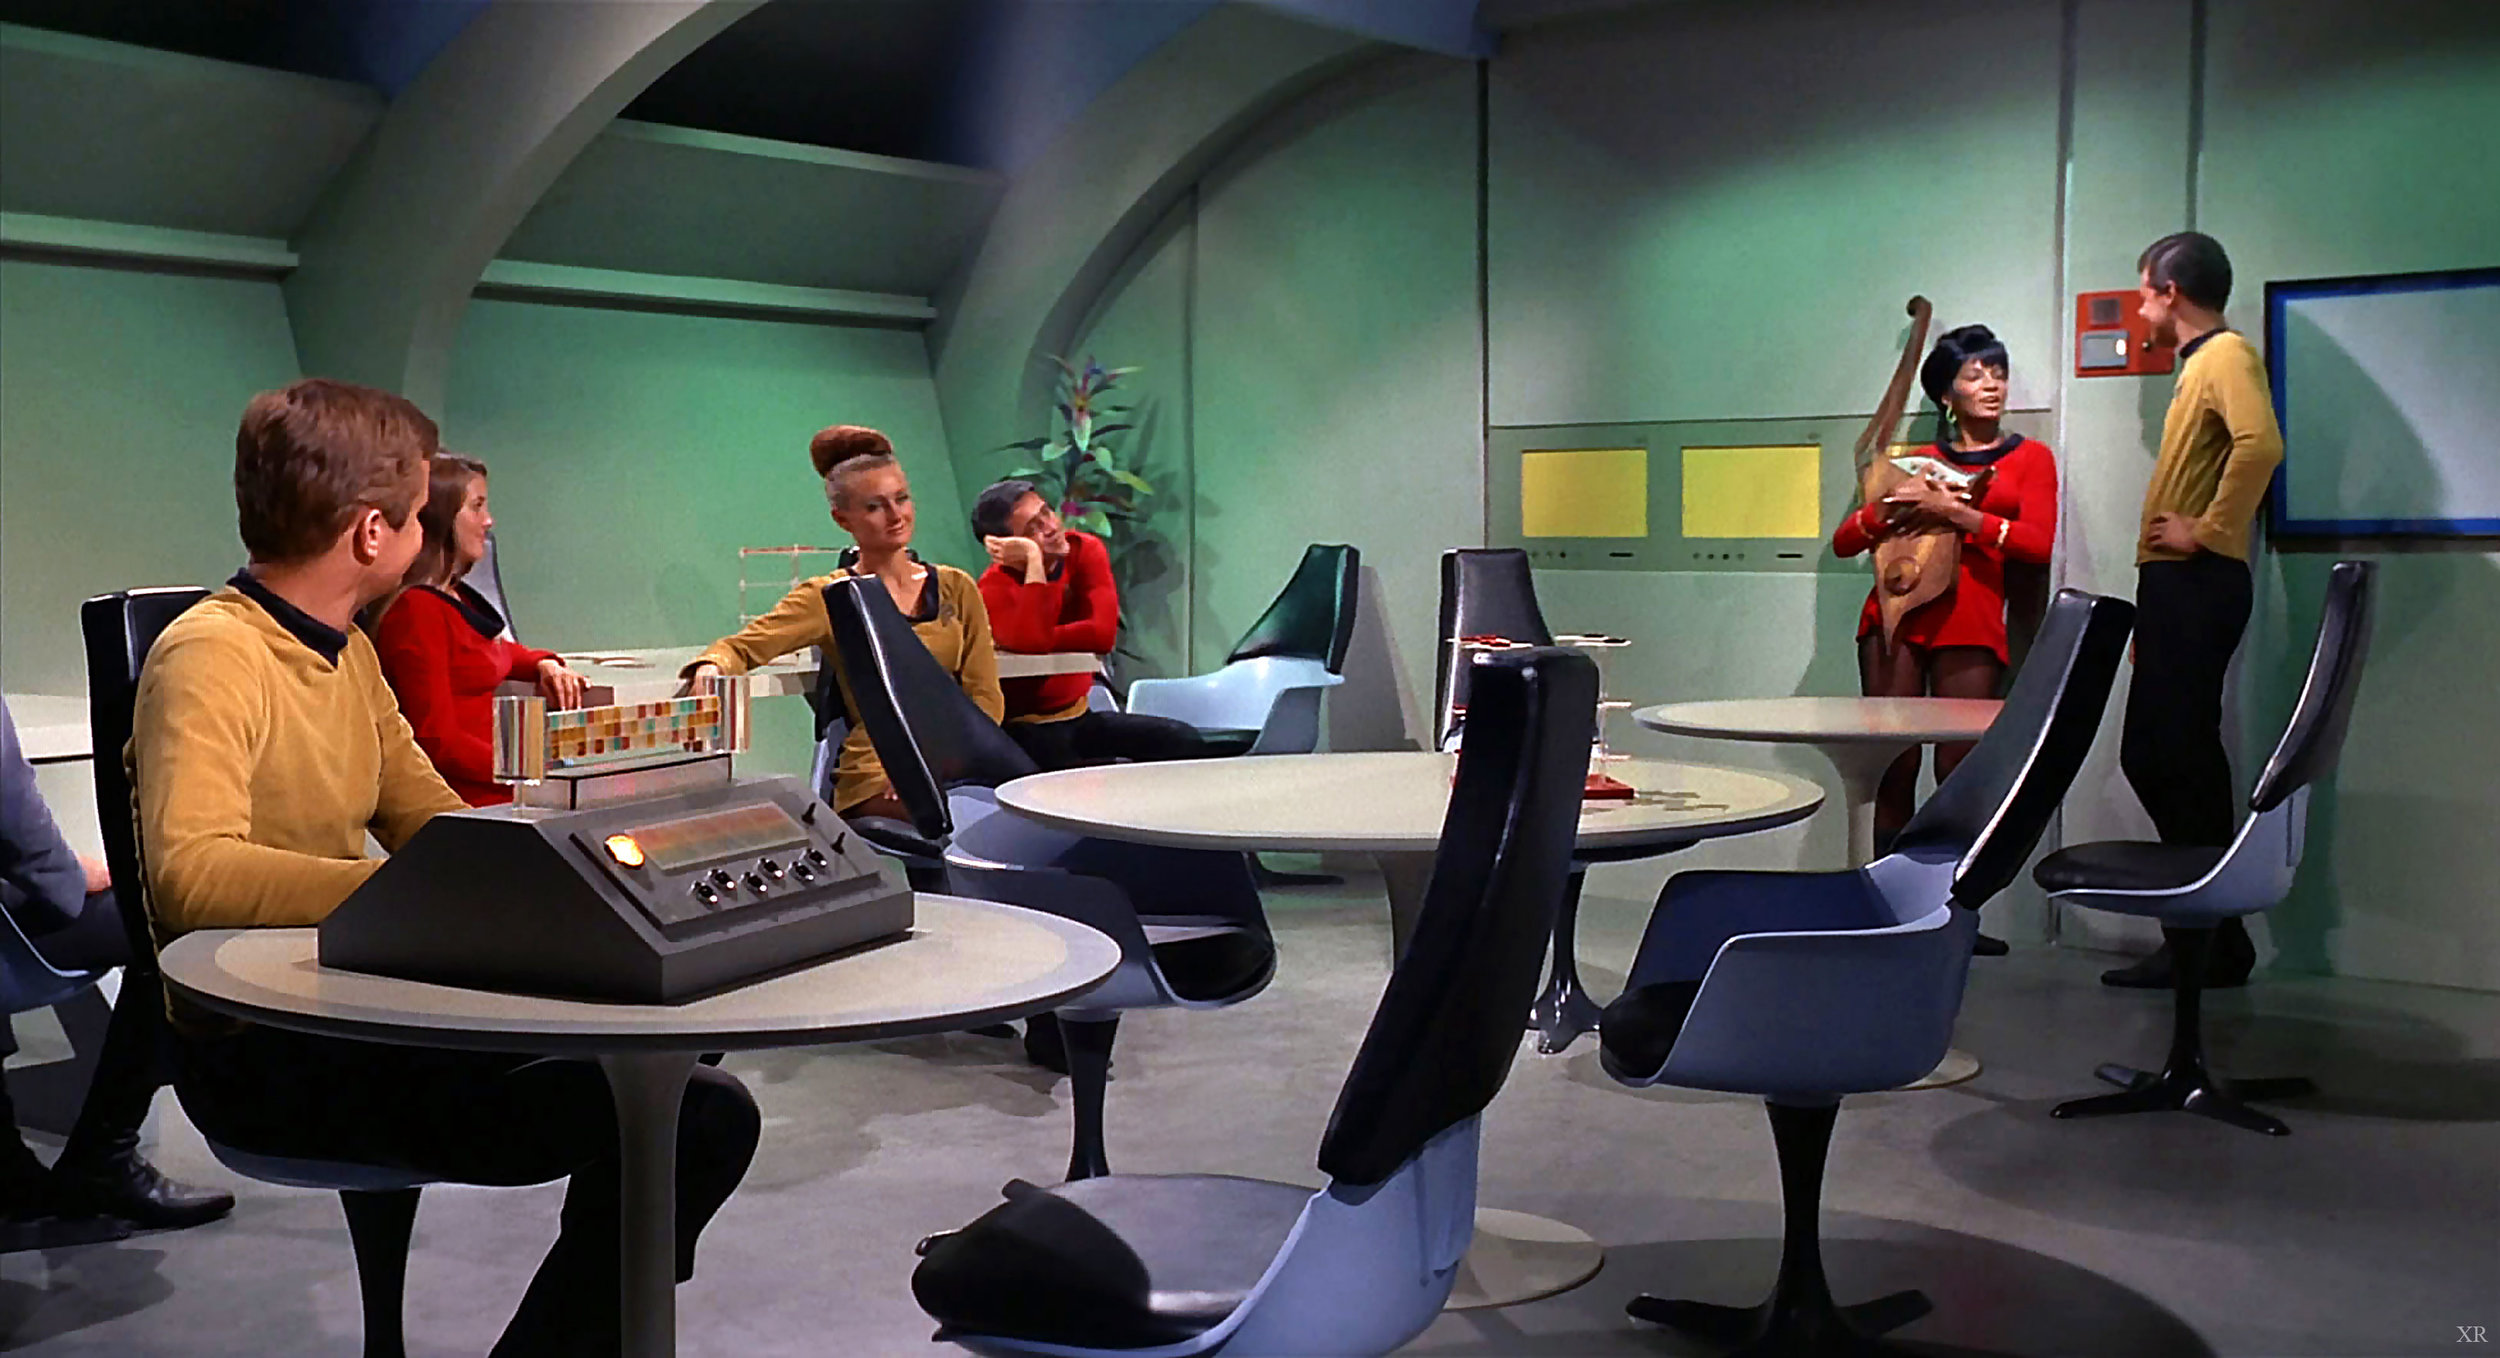 retro-time-capusle-star-trek-chairs.jpg